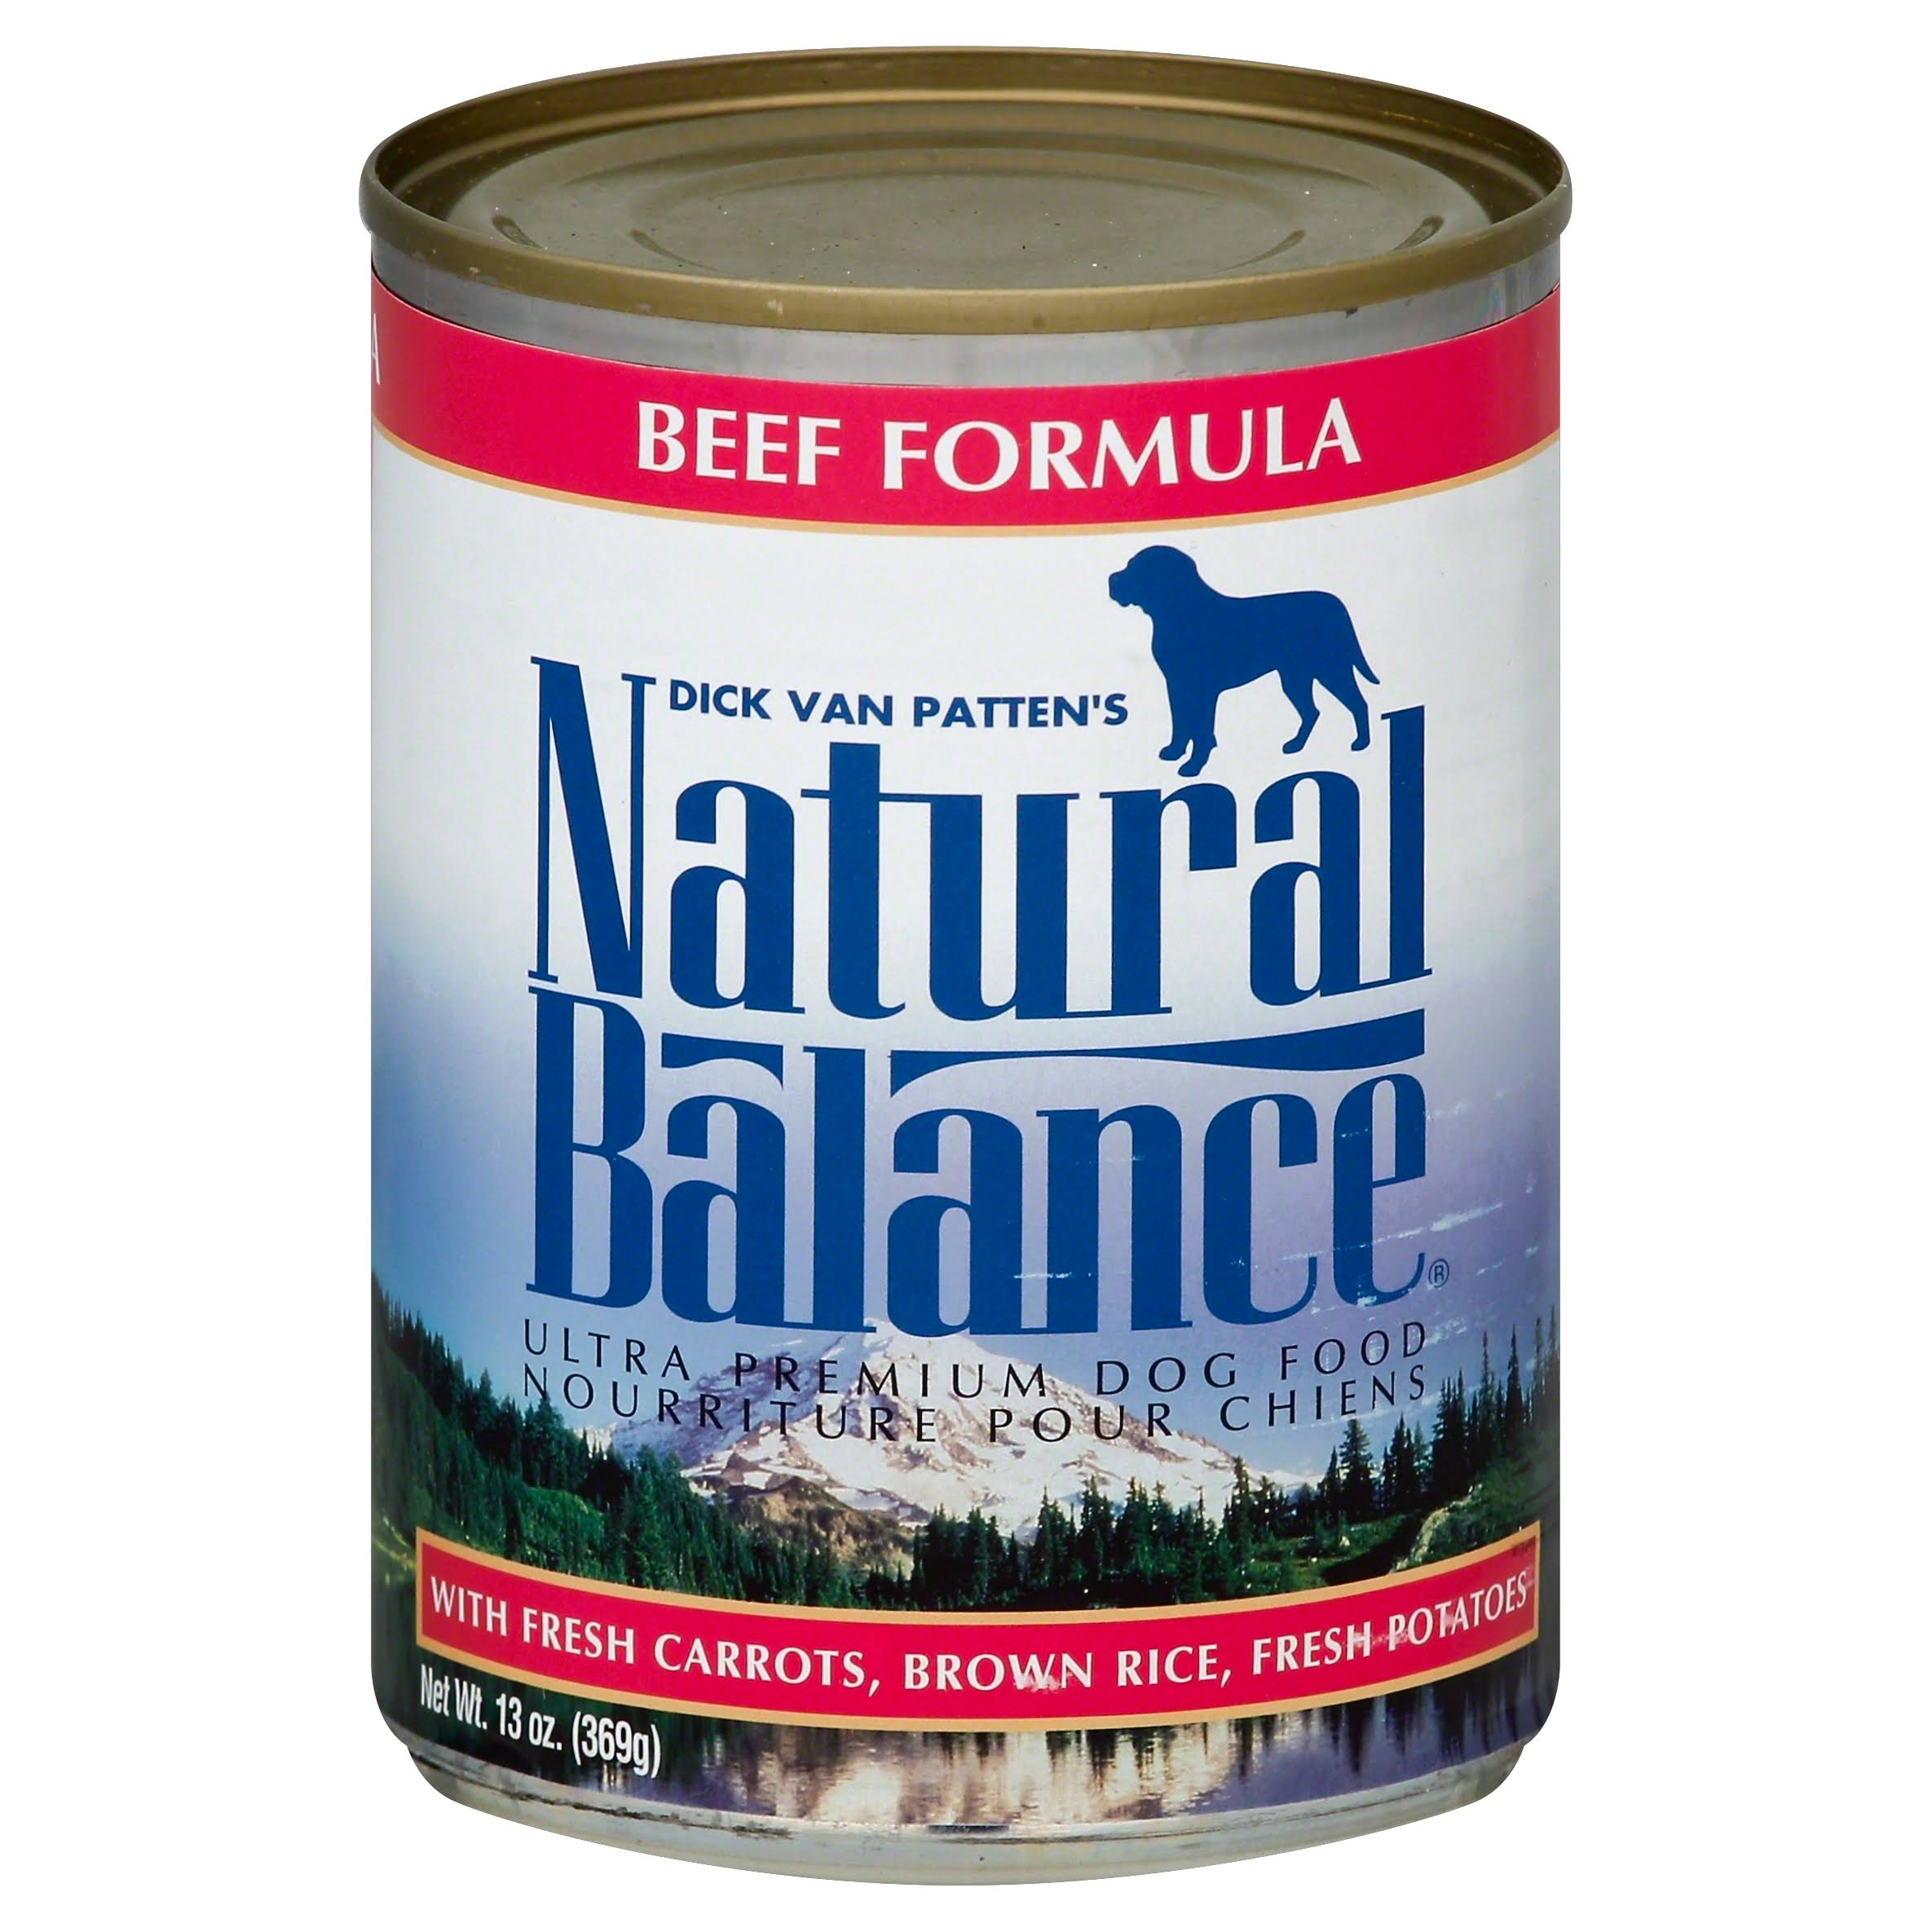 Natural Balance Ultra Premium Dog Food - Beef Formula, 13oz